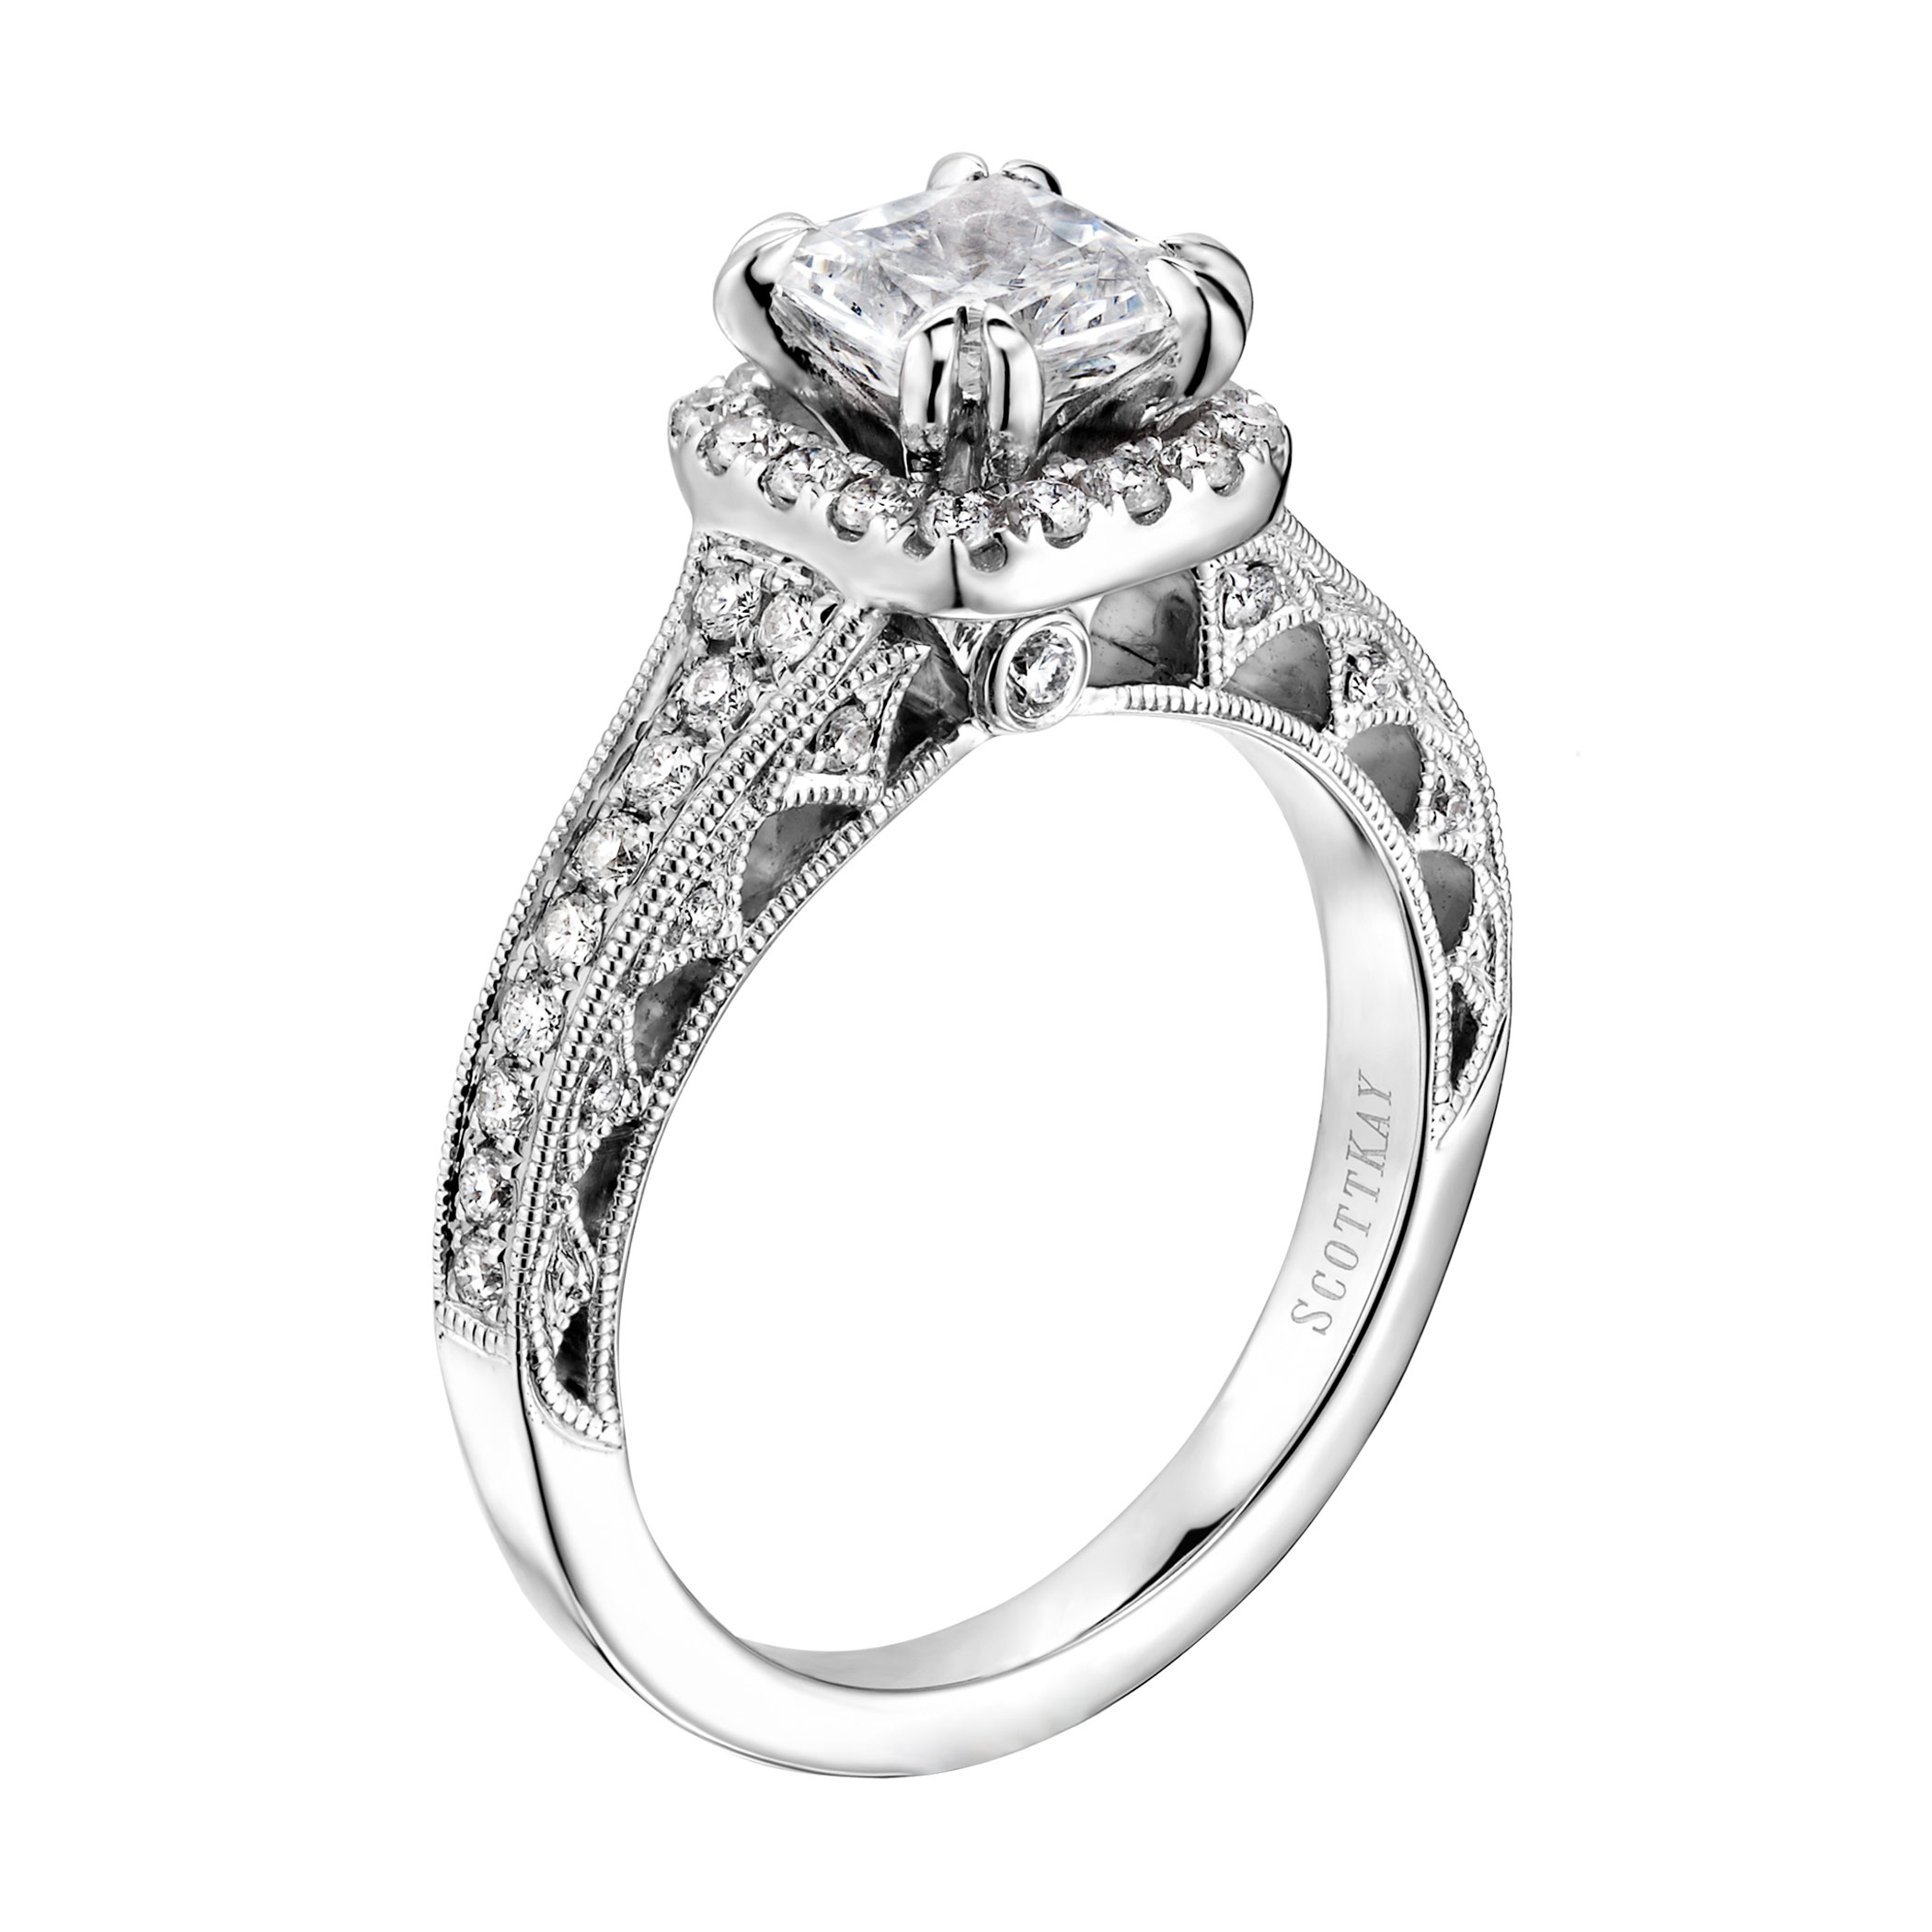 engagement diamond striking my at wedding love i inspiration lane rings pin see bridal jewelers most kay neil more set